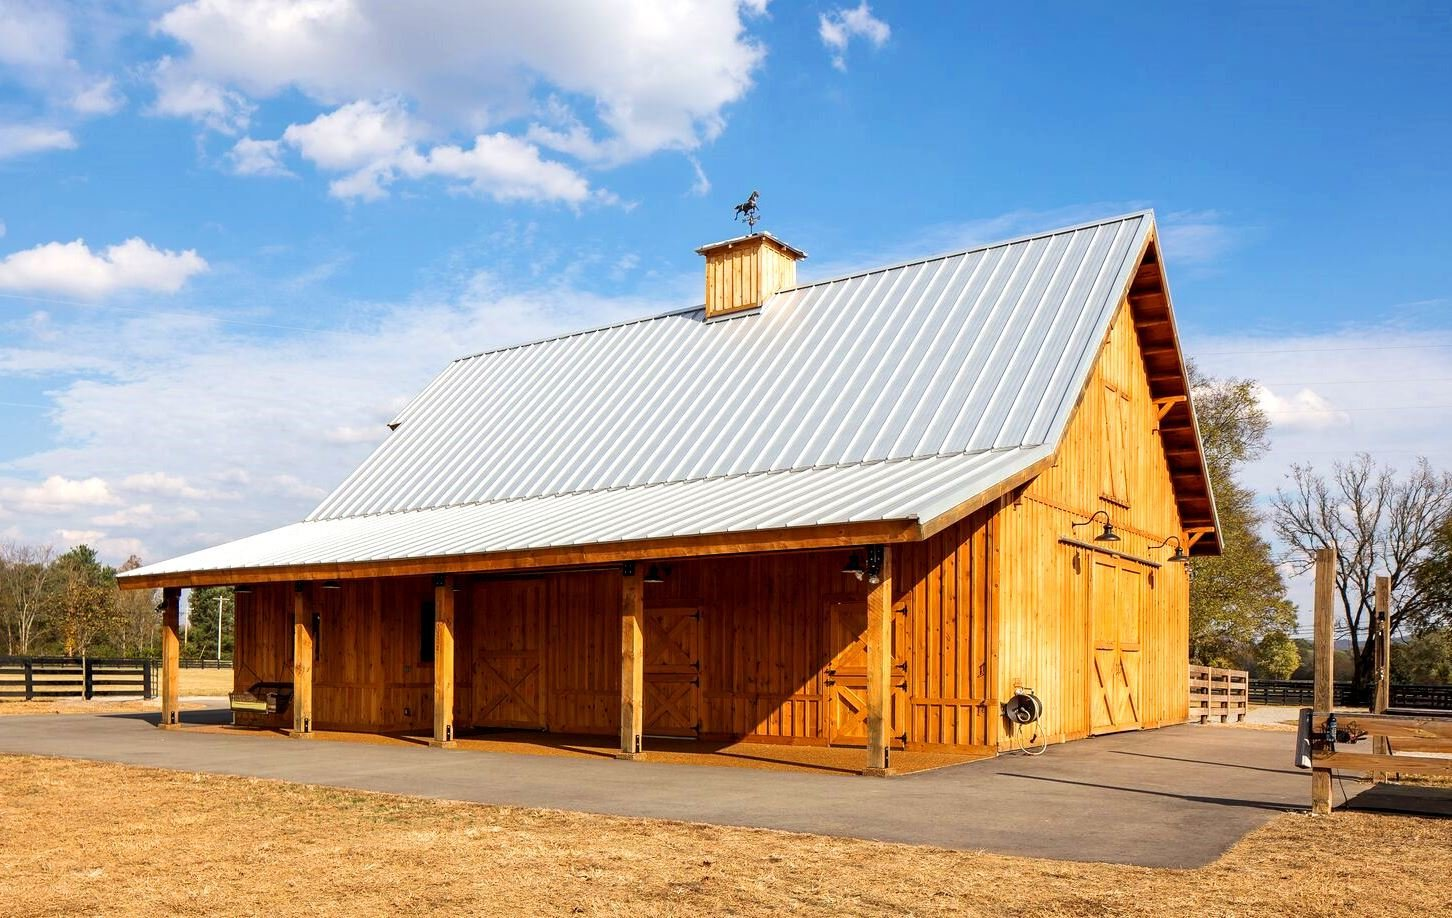 Beam Barns' Event Center and Wedding Barns can be fully customized to meet individual needs. Every Event Center Barn gets a custom floor plan layout that's specific to your needs, which is included in the standard cost.  Photo 5 of 11 in 10 Prefab Barn Companies That Bring DIY to Home Building